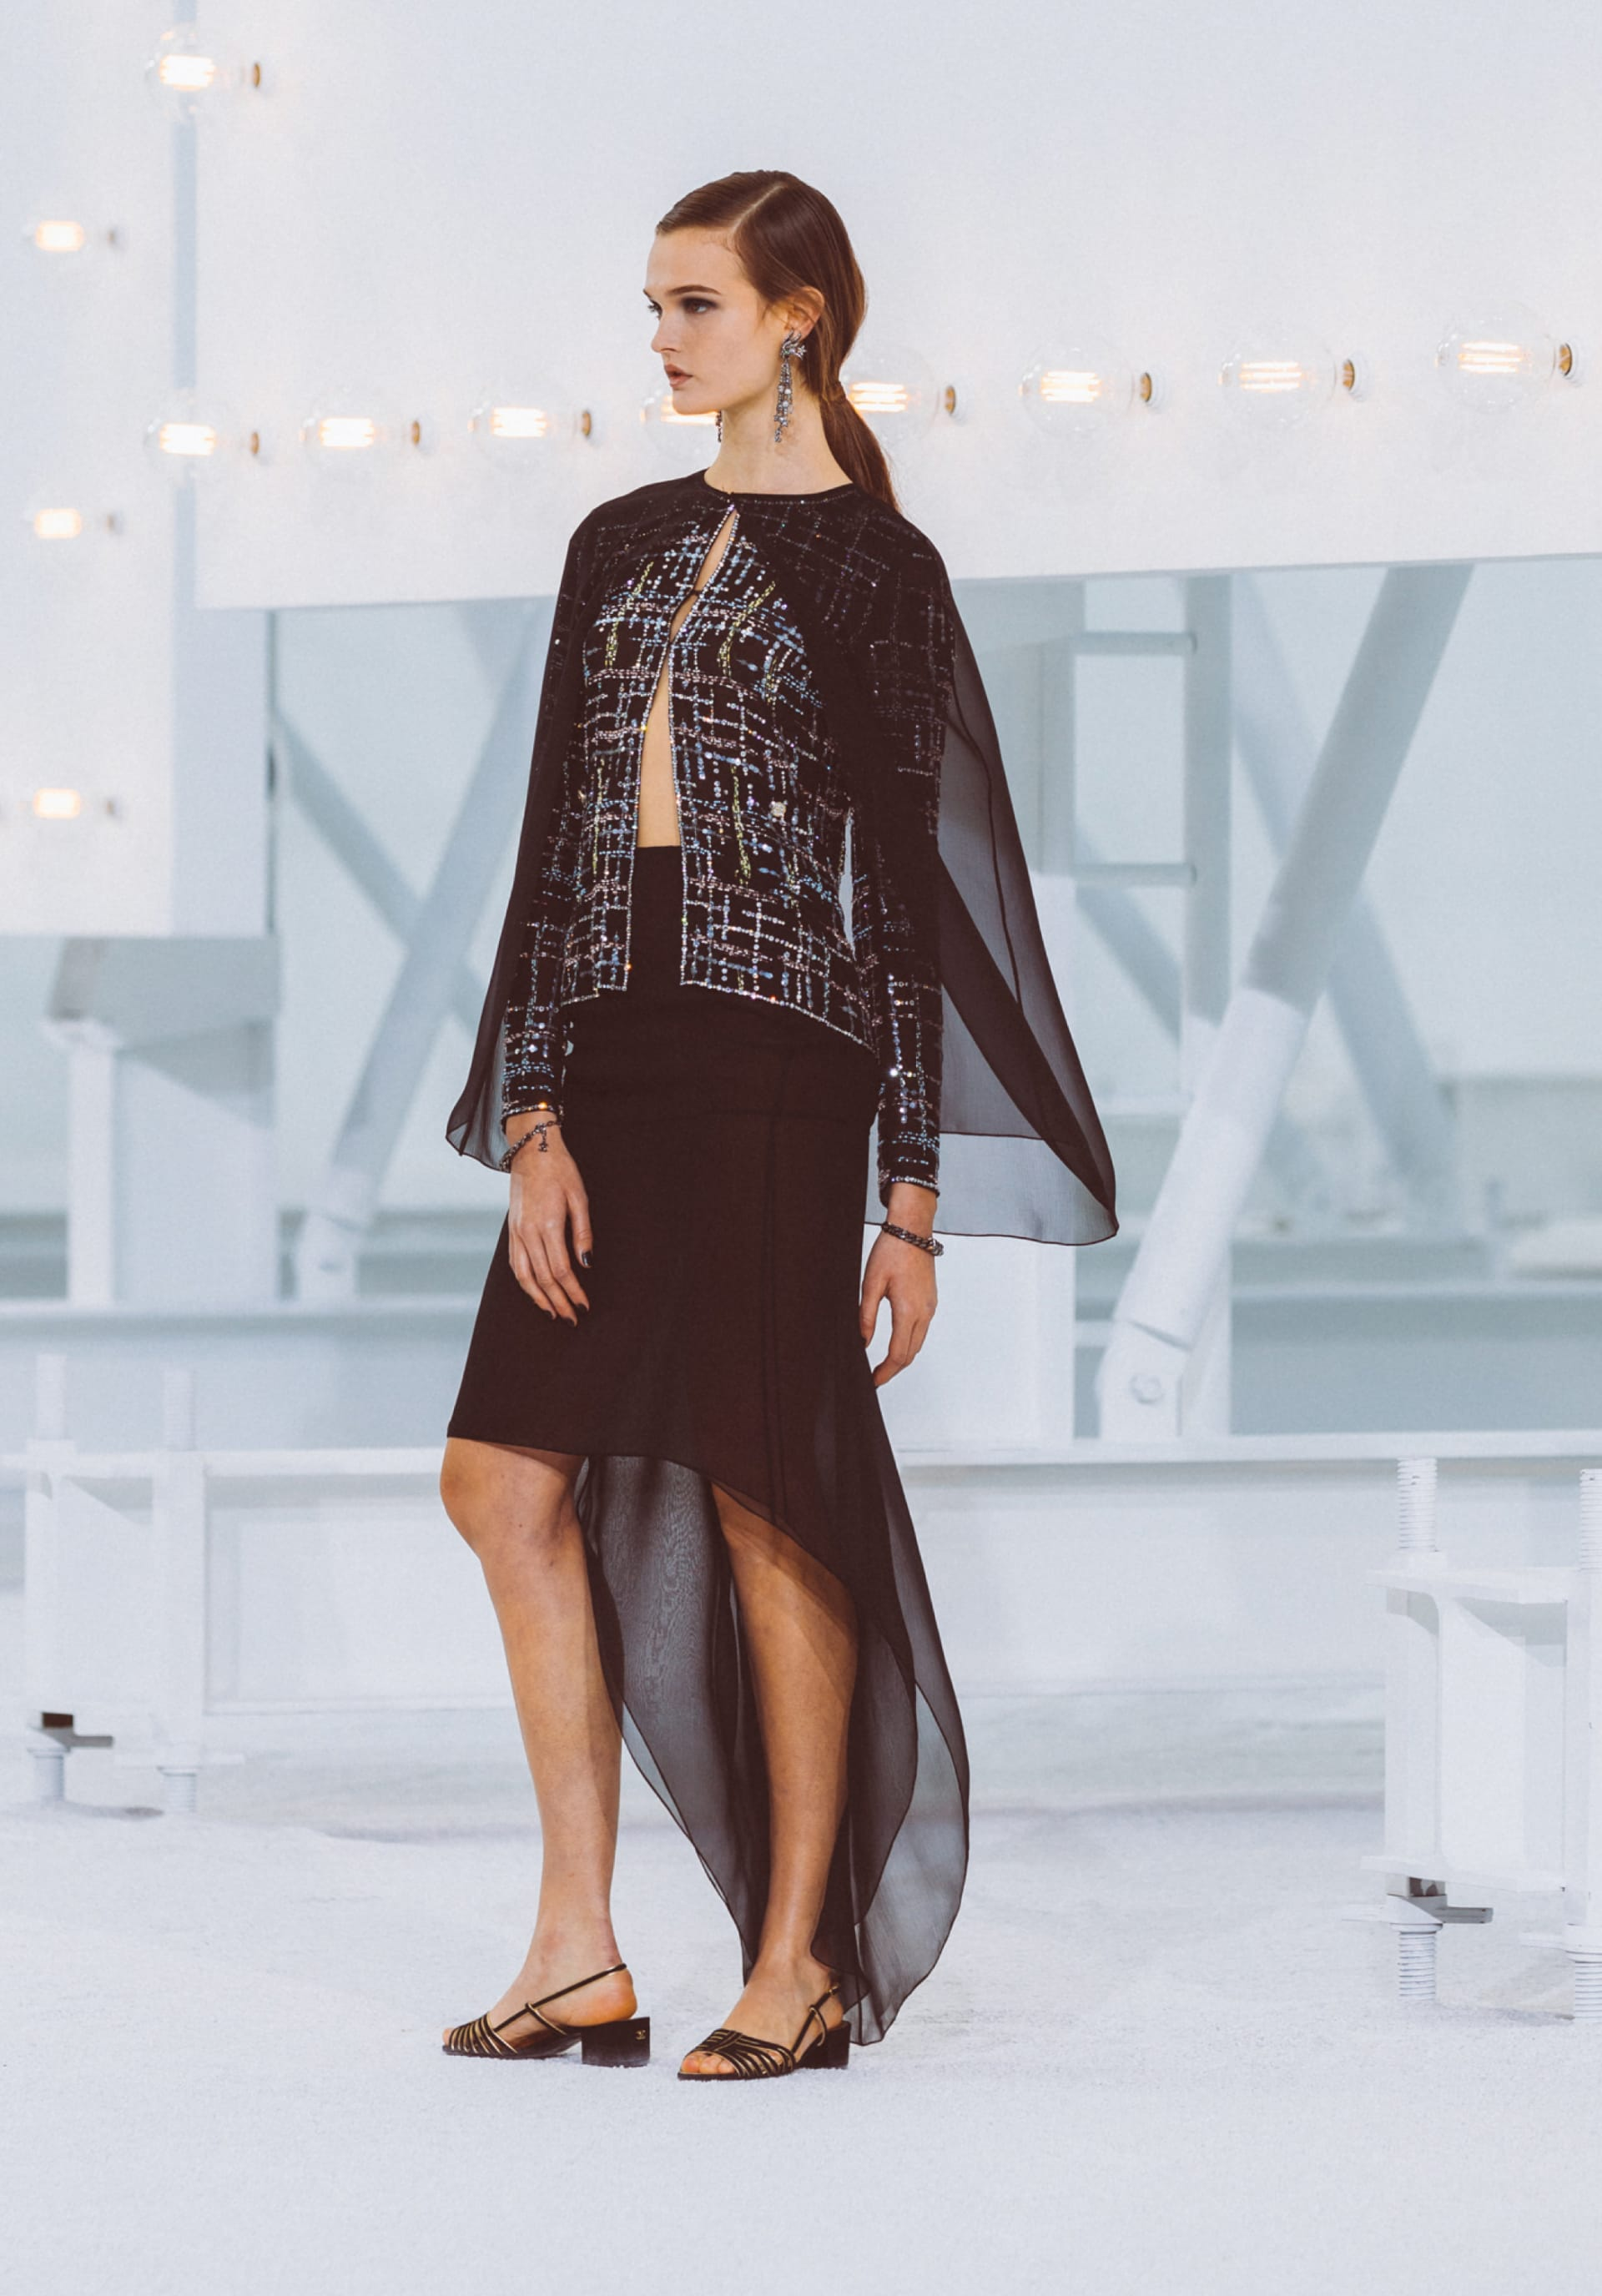 View 1 - Look66 - Spring-Summer 2021 - see full sized version